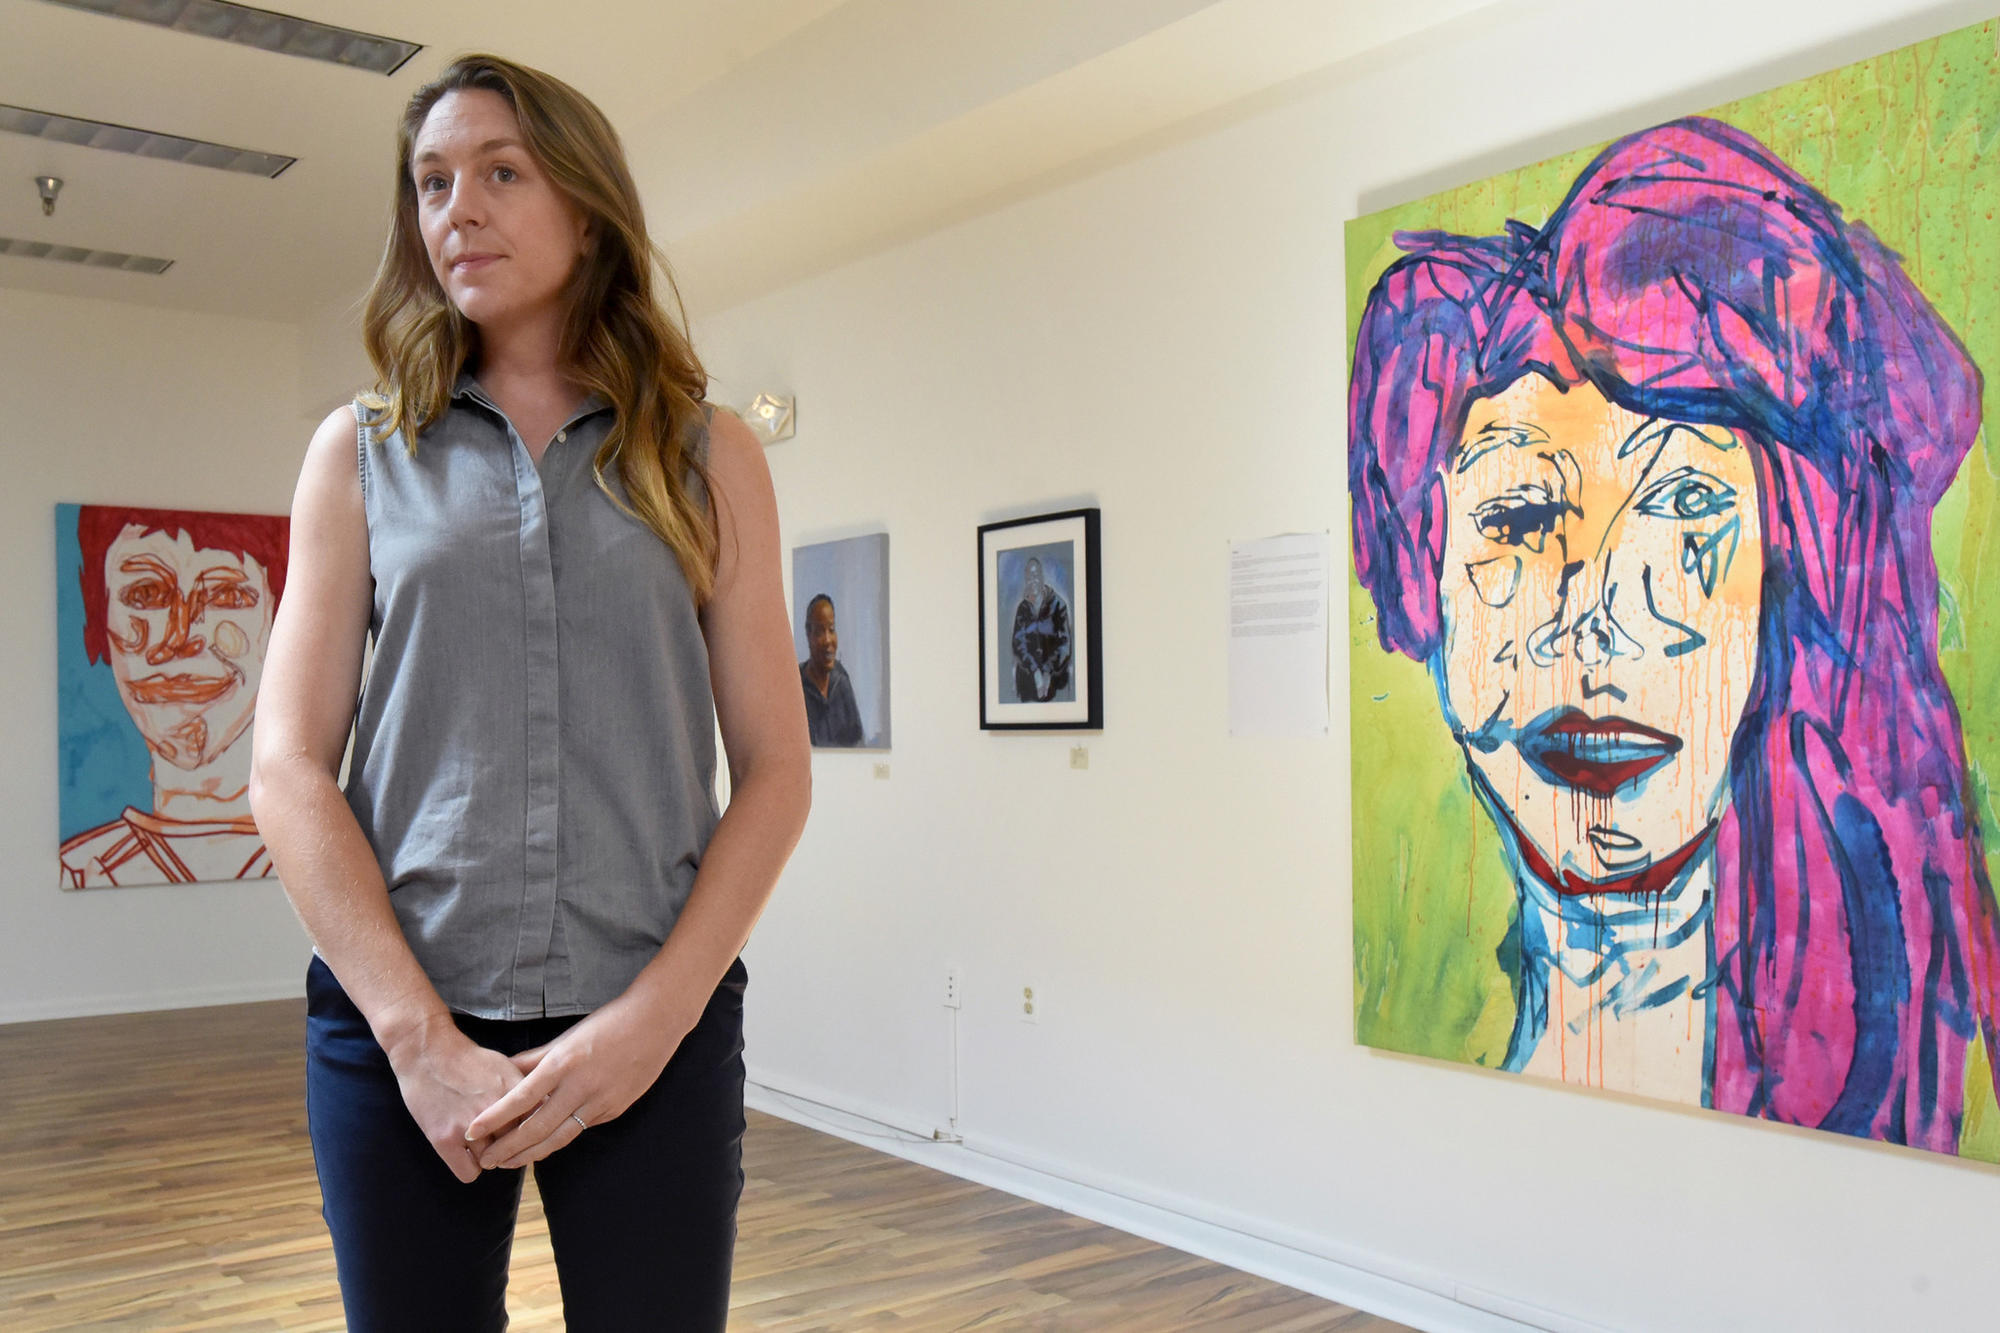 Art exhibit in Pigtown portrays the stories of female sex workers and users  of drugs - Baltimore Sun